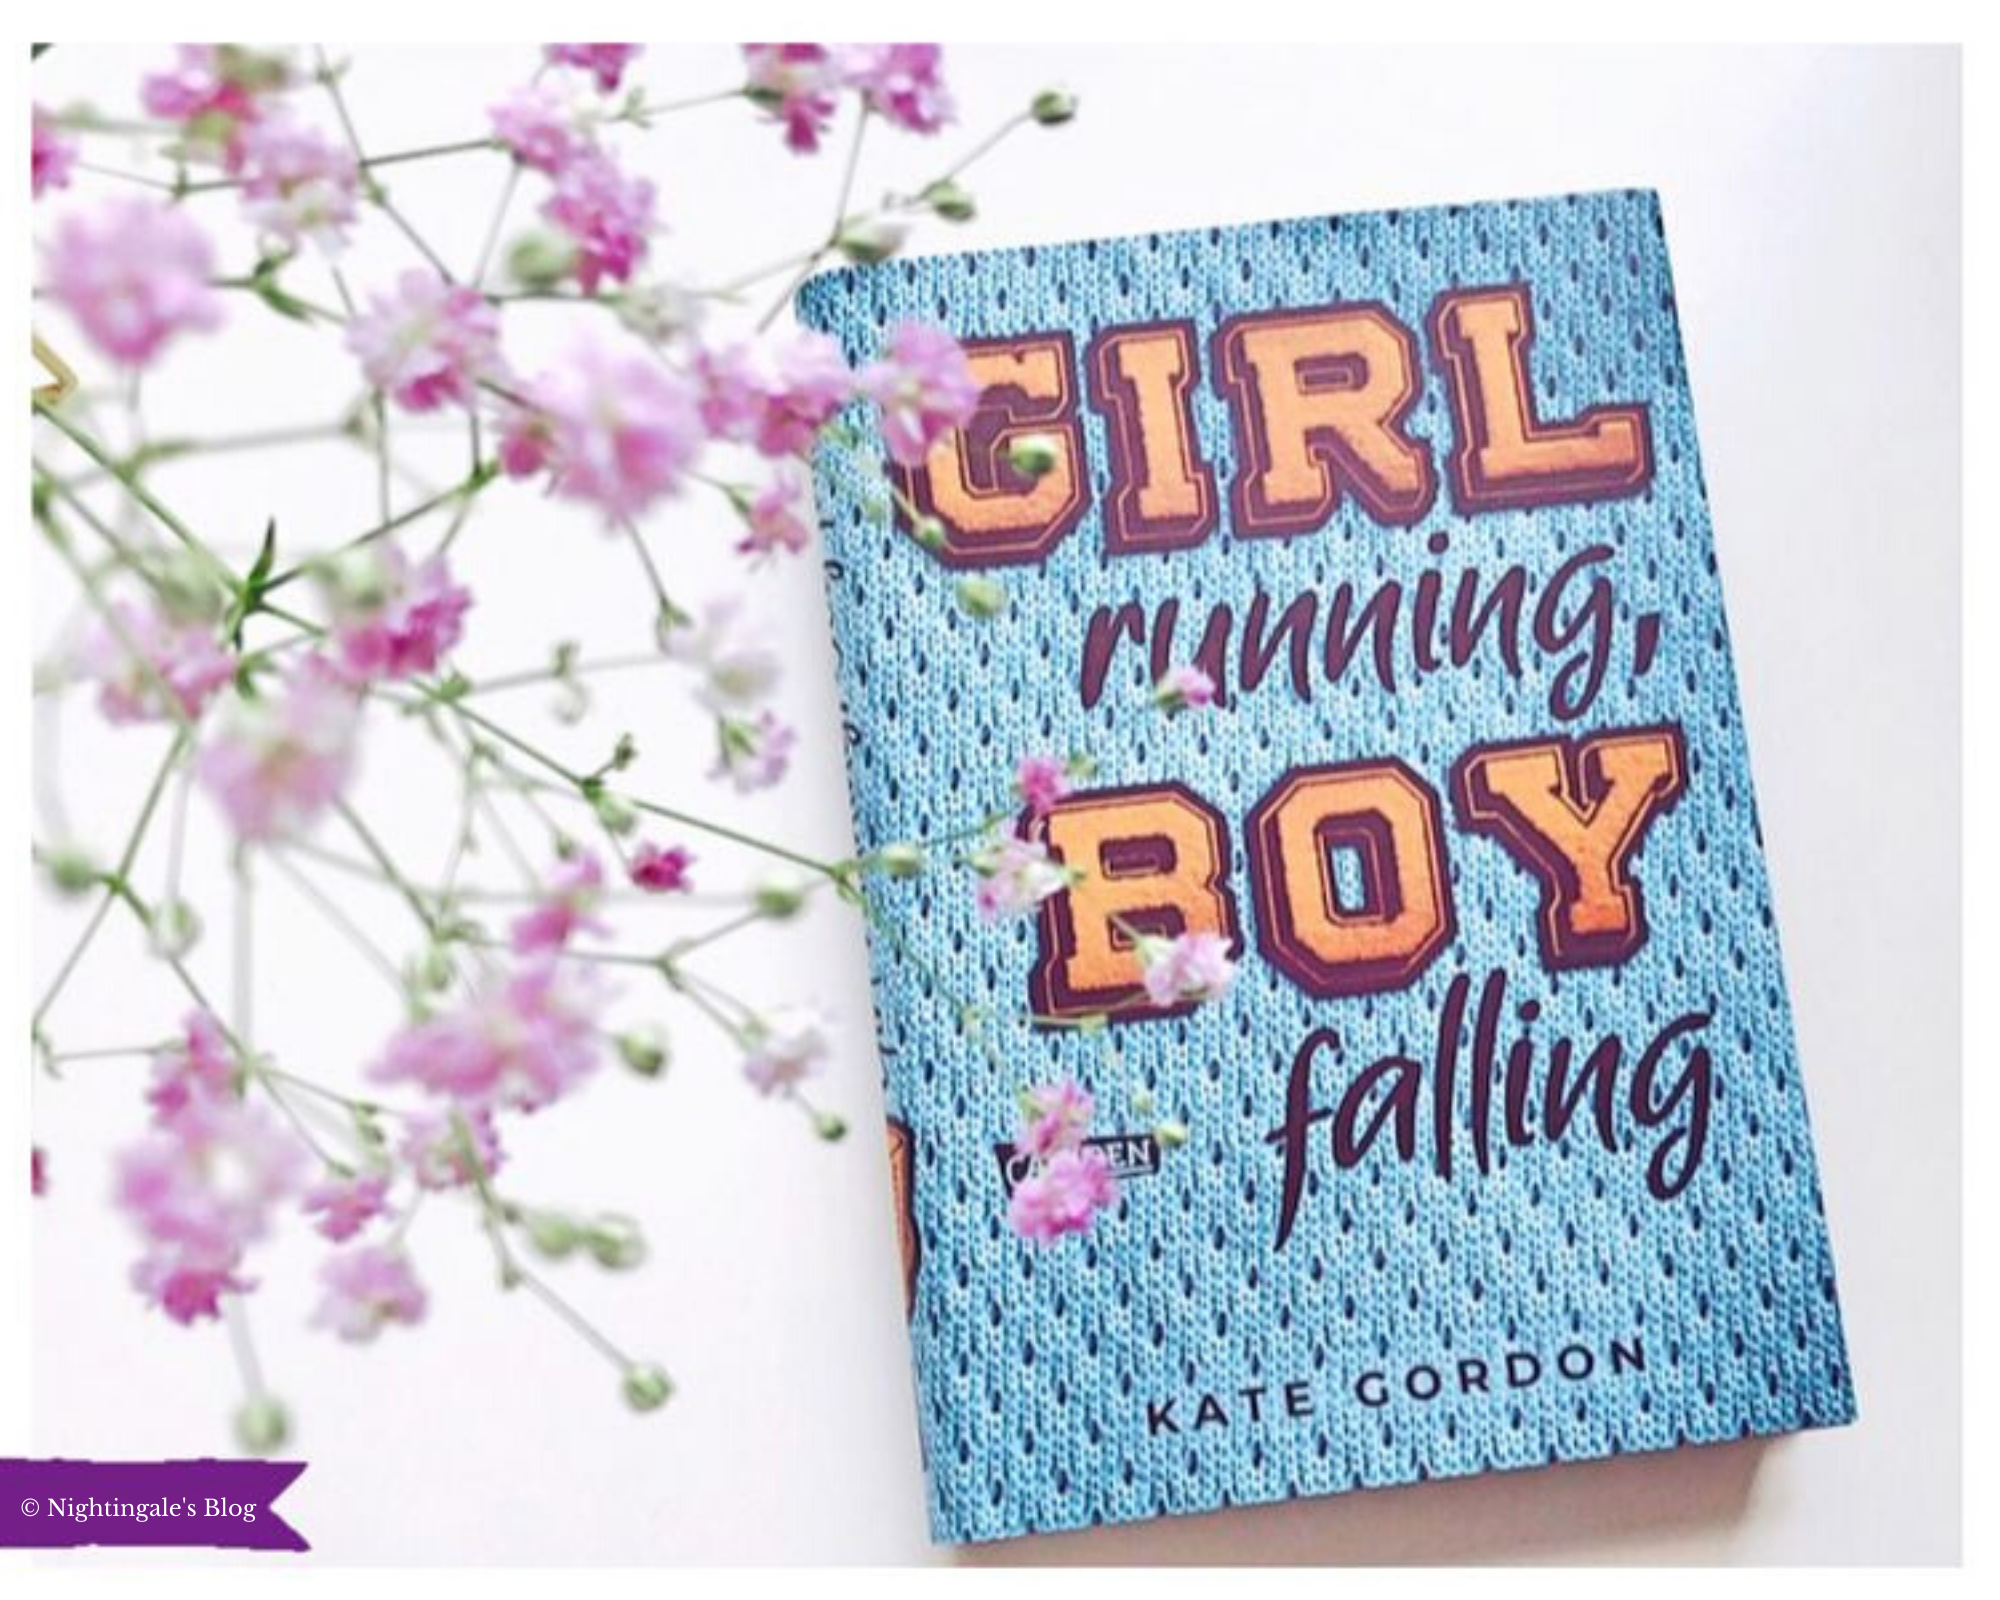 "Rezension | ""Girl running, boy falling"" von Kate Gordon"